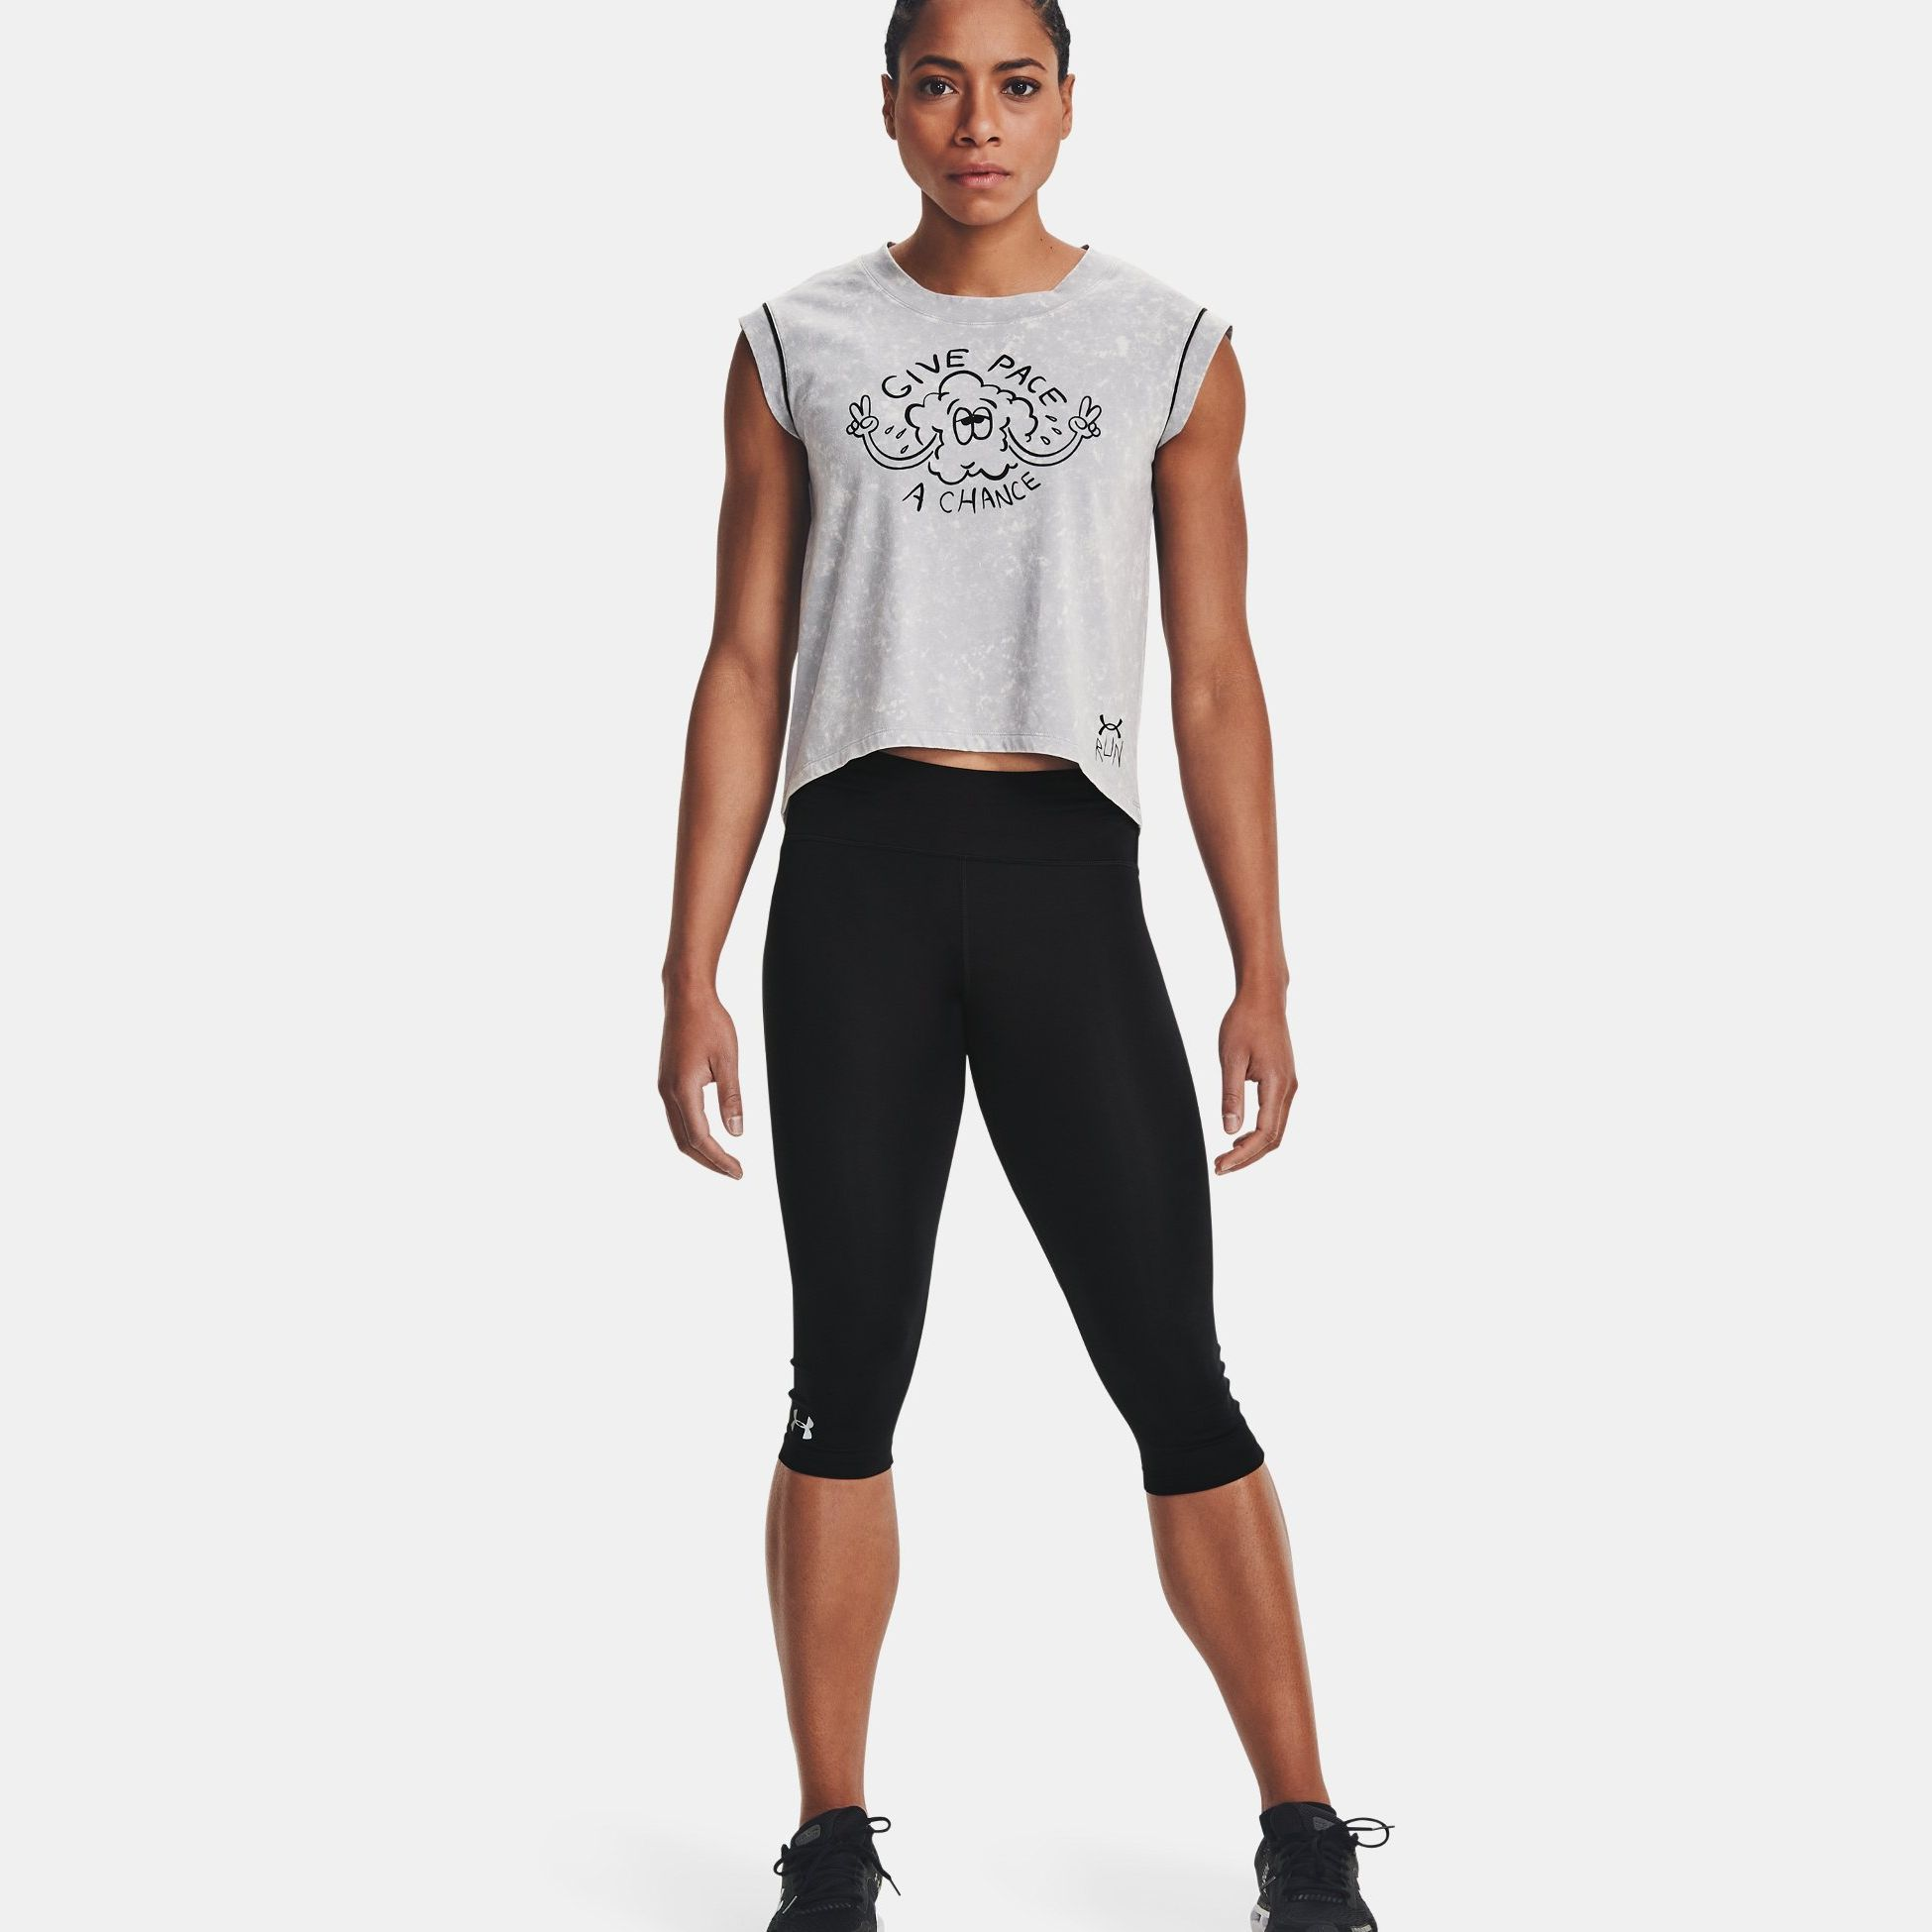 Clothing -  under armour UA Give Pace A Chance 1377